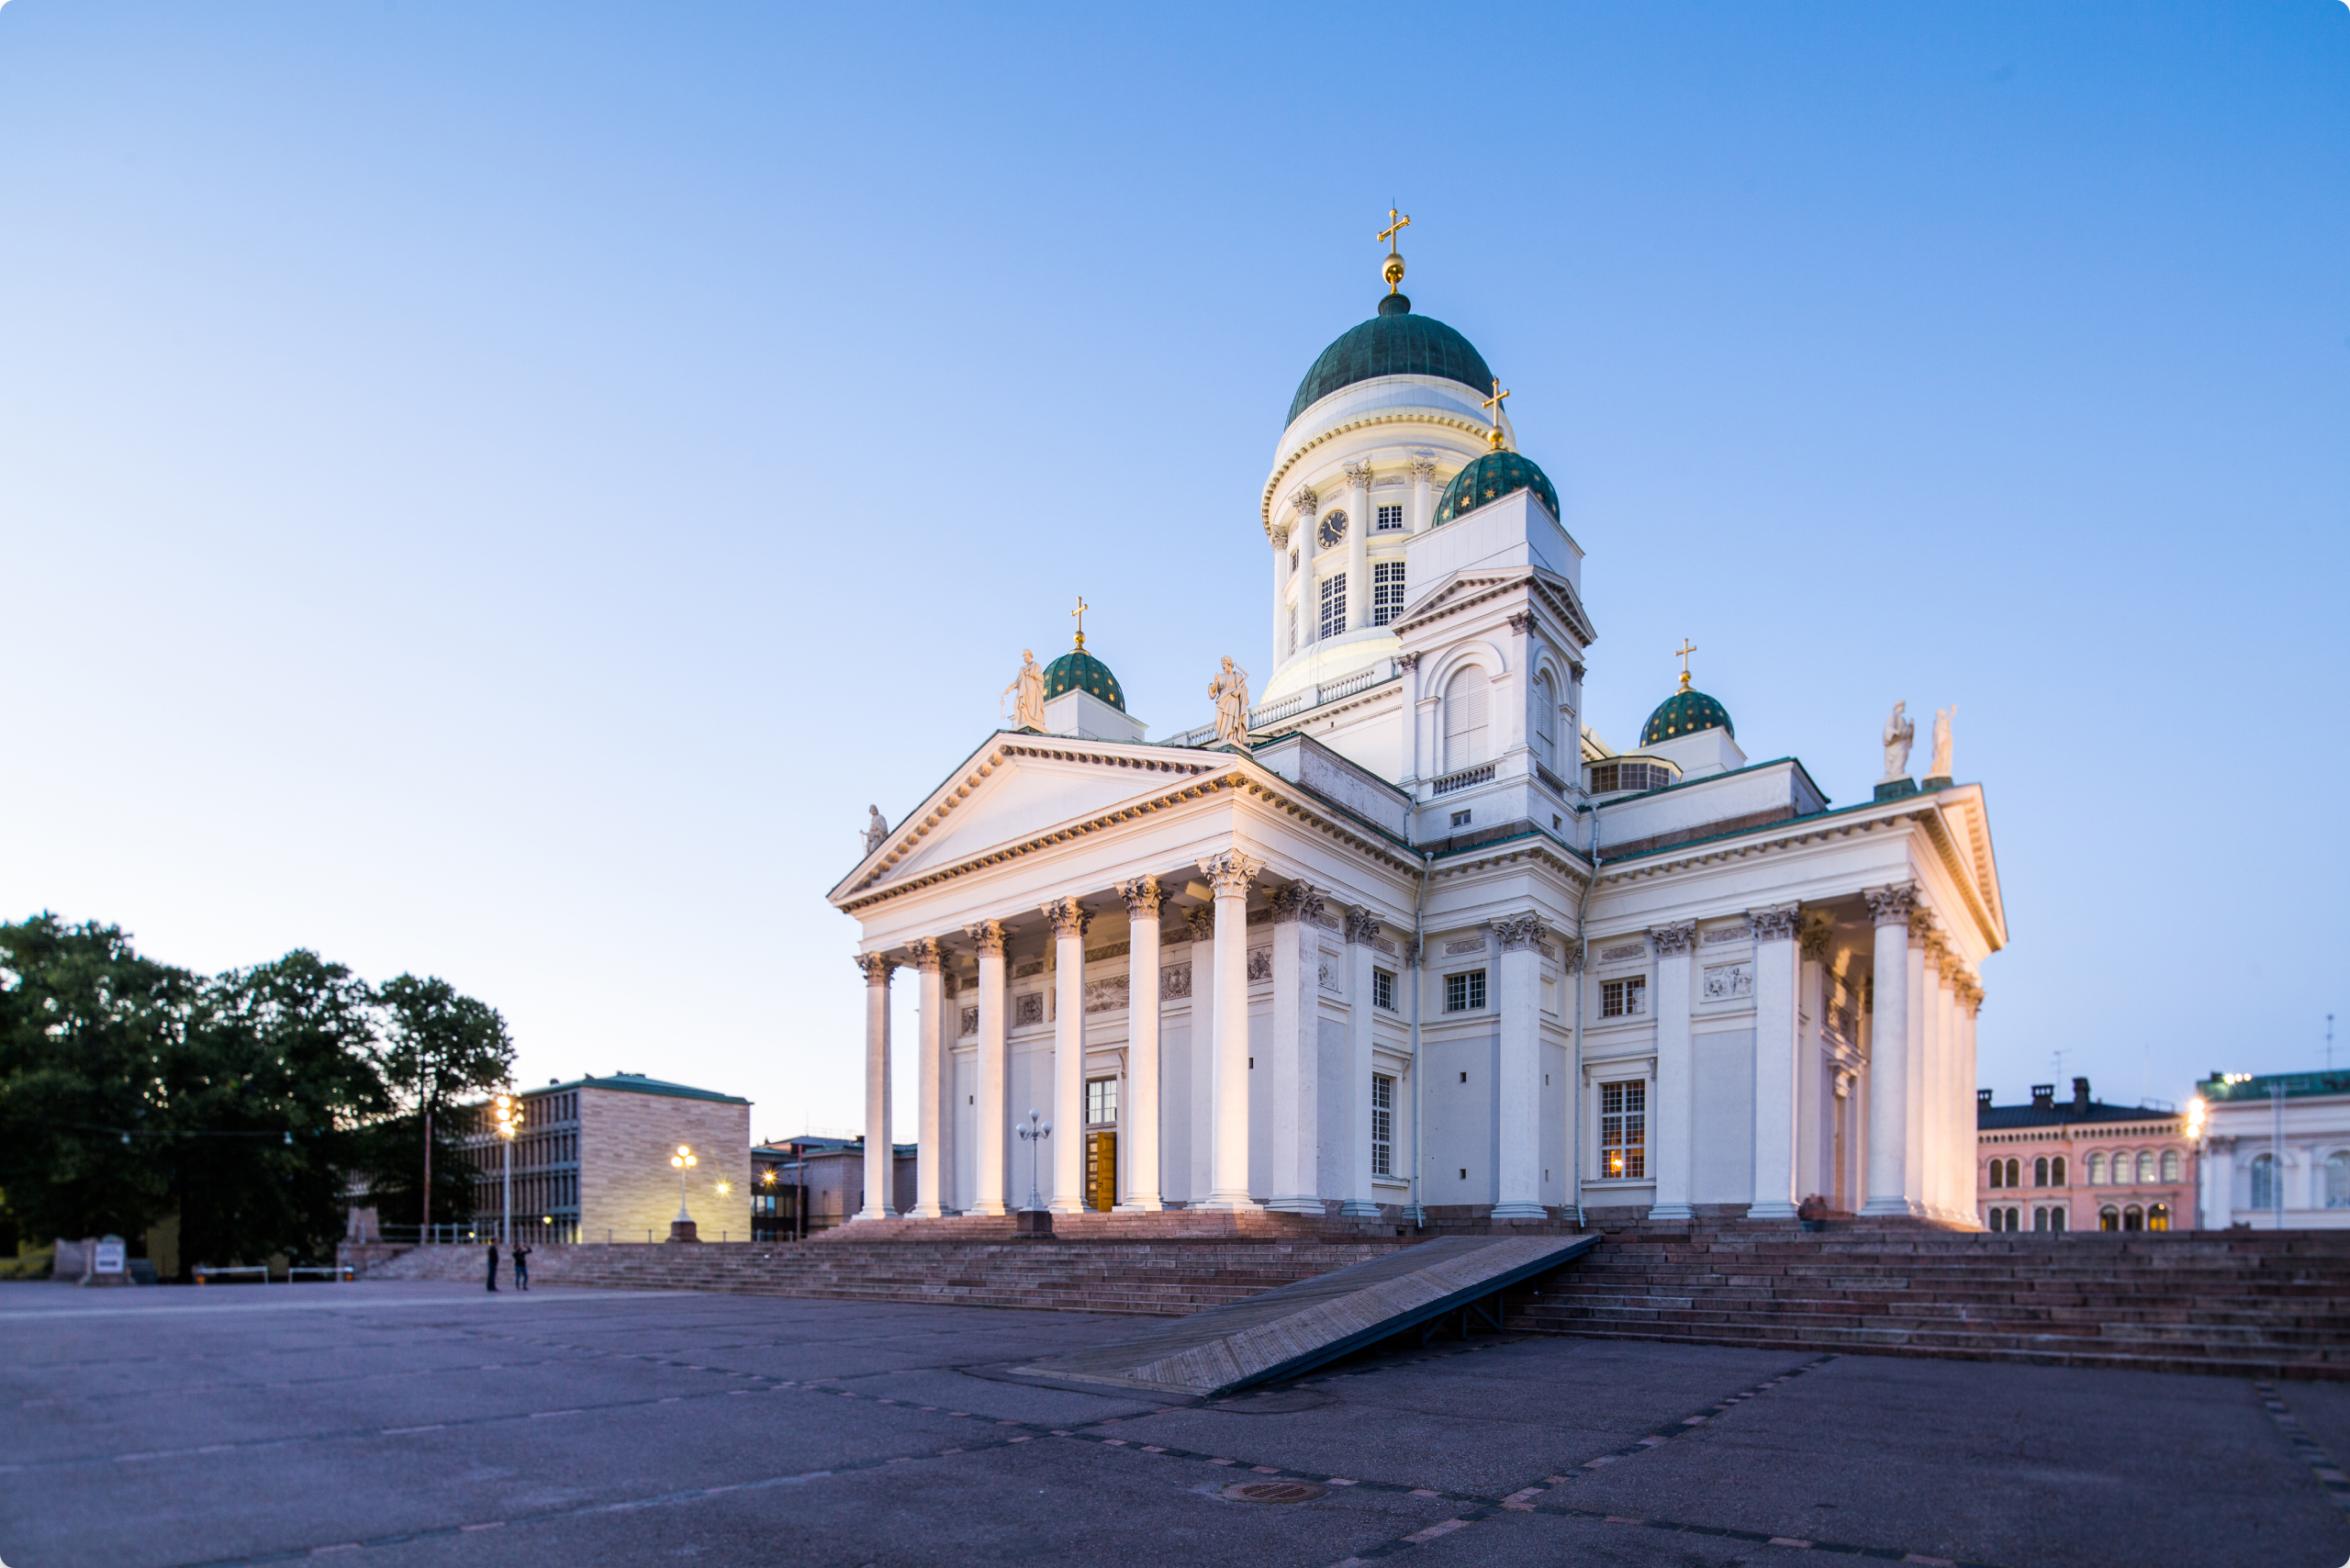 Helsinki cathedral at twilight with corrected perspective